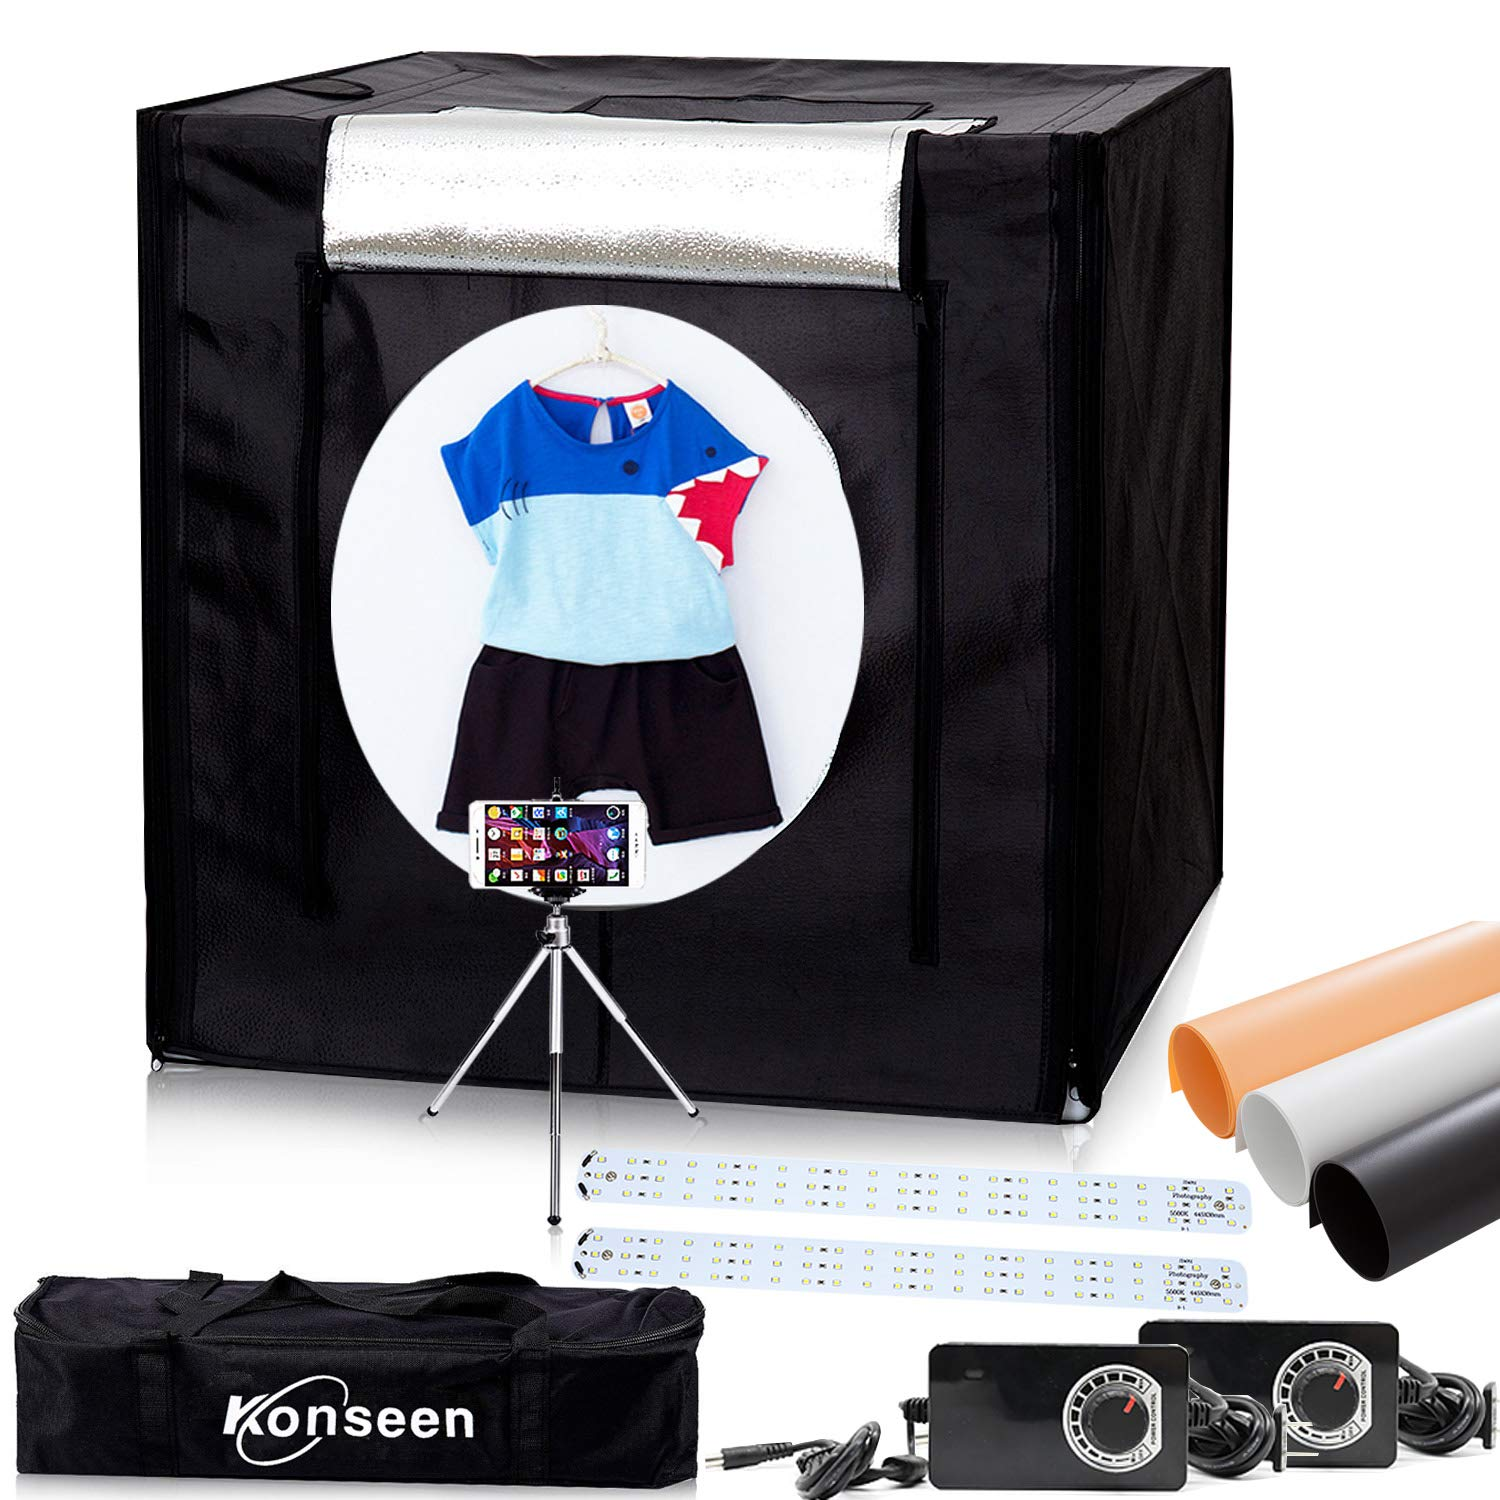 192pcs LED Dimmable Lightbox for Studio Product Photography 32''x32''x32'' Cube Shooting Tents Photo Lighting Softbox Background Kit with Mini Tripod and 3 Colors PVC Backdrops in Carry Bag by Konseen